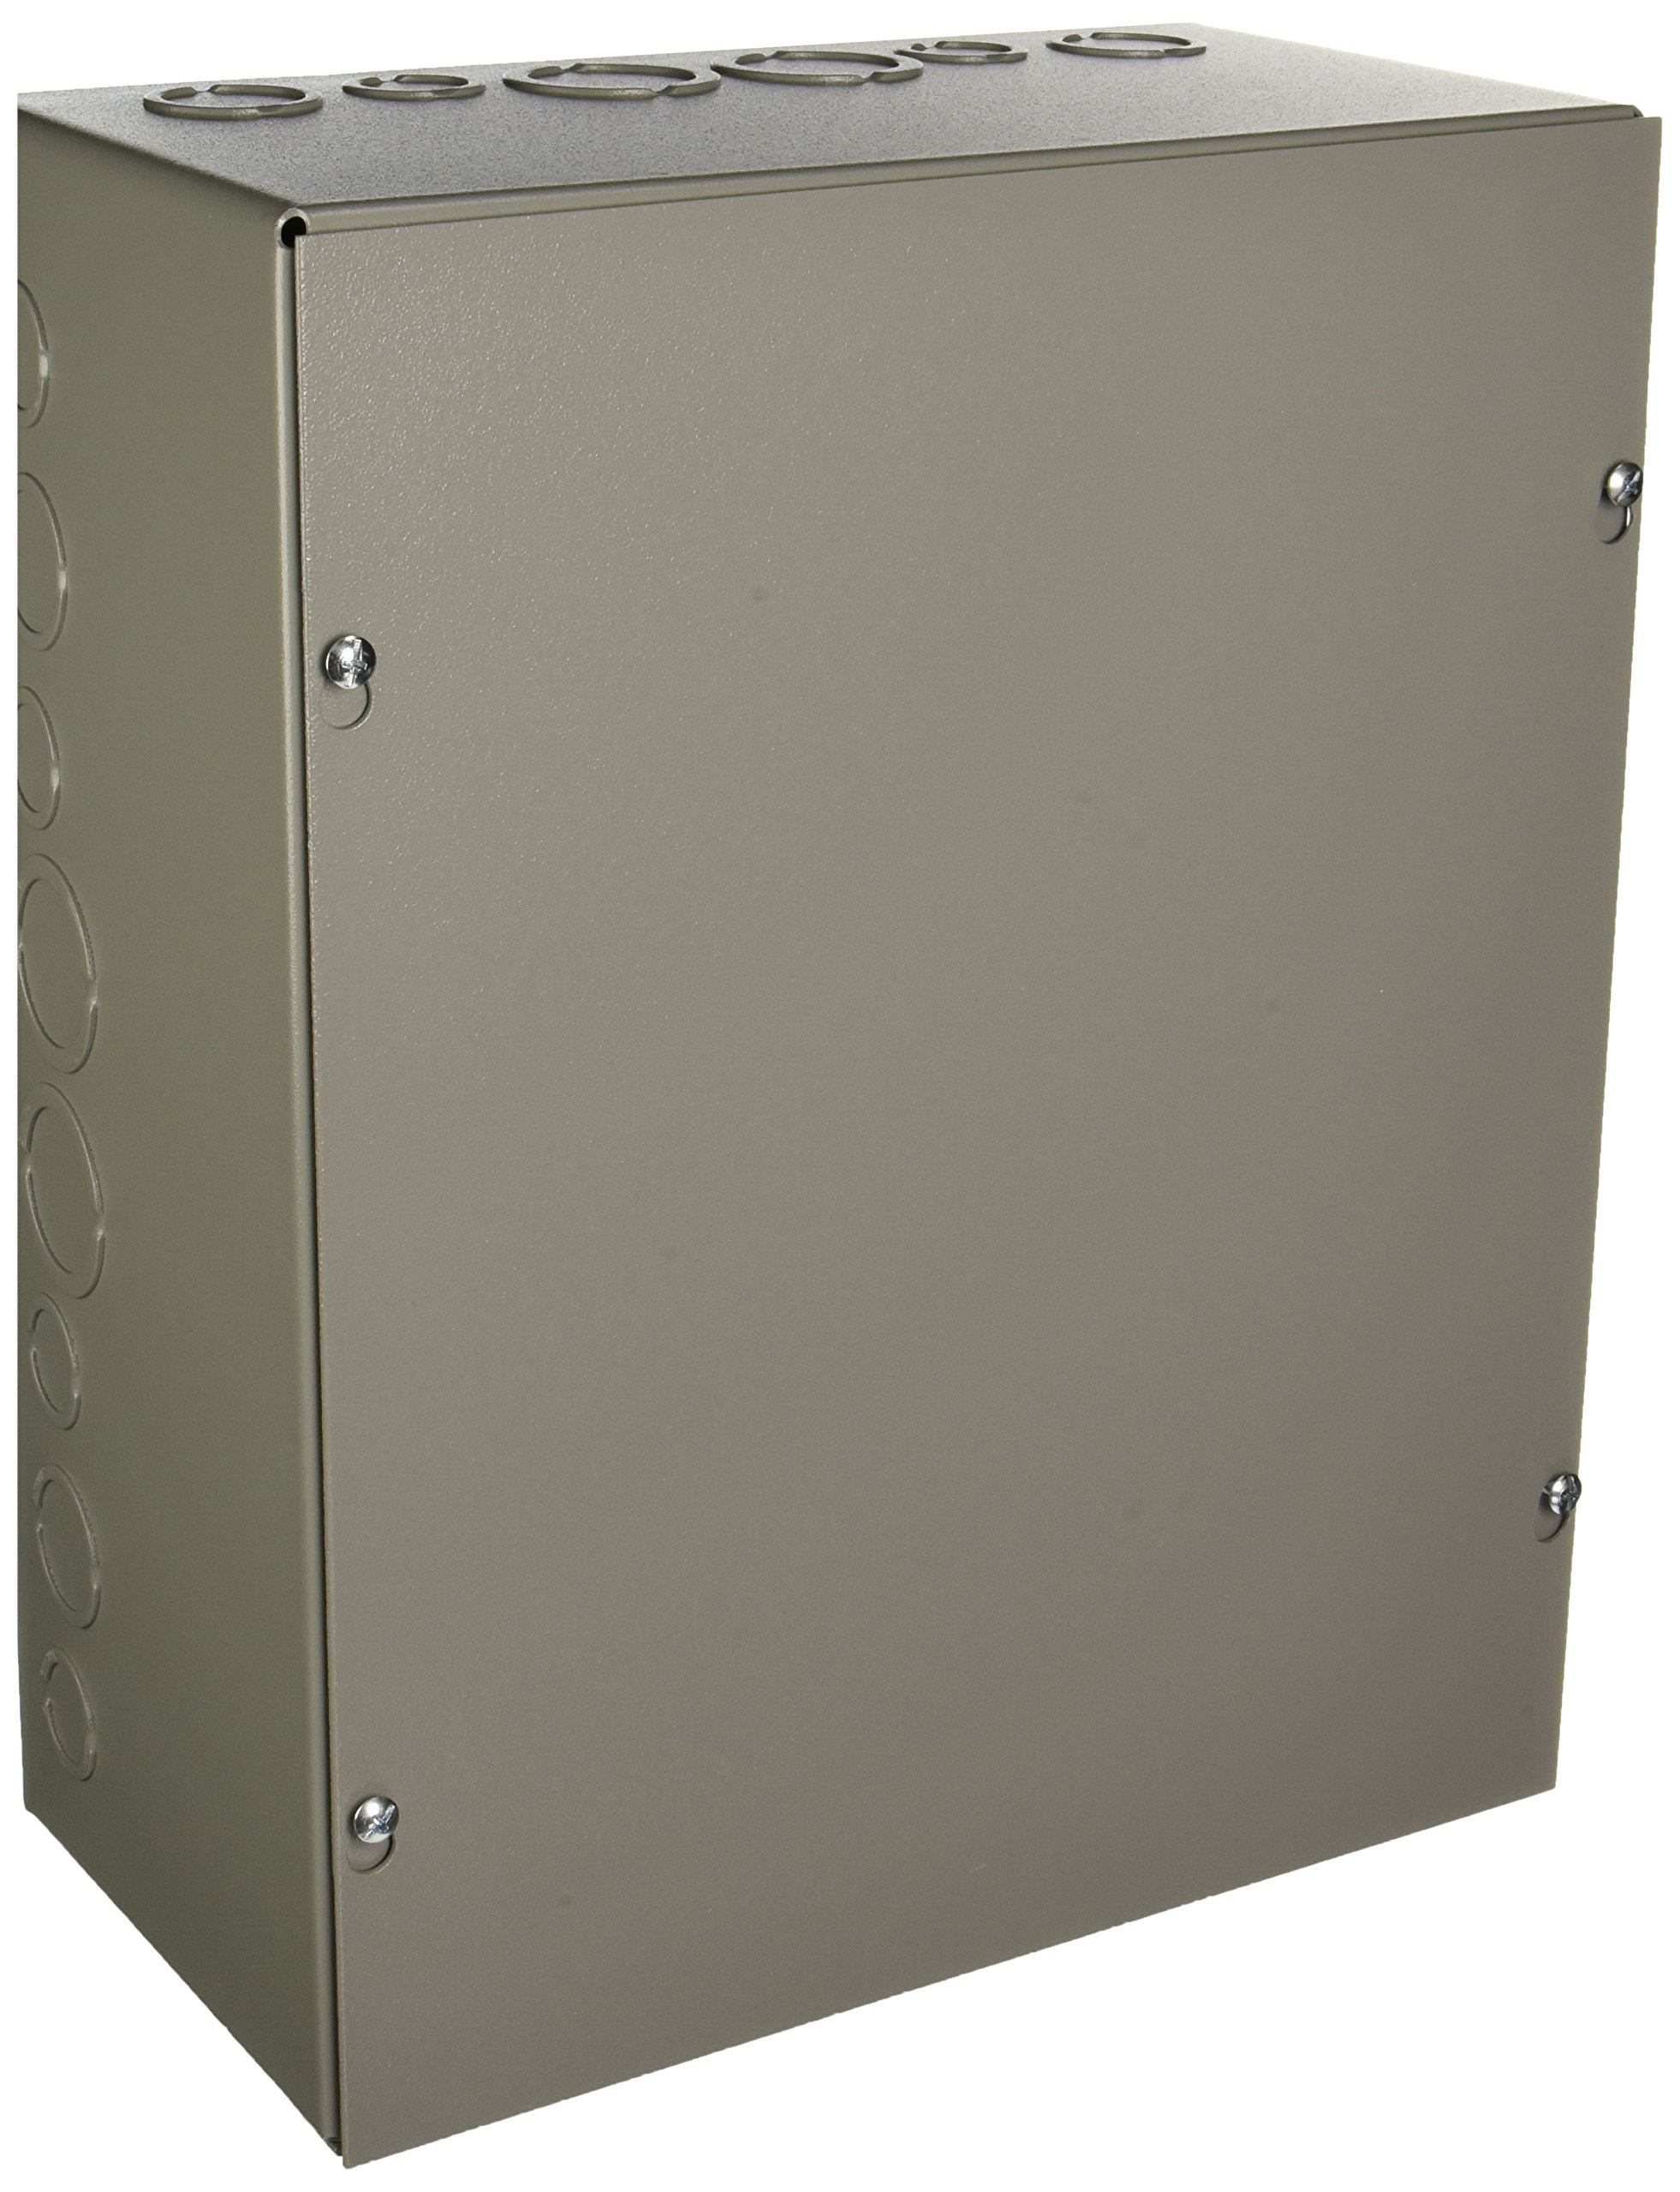 Wiegmann SC121506 SC-Series NEMA 1 Screw Cover Wallmount Pull Box with Knockouts, Painted Steel, 15'' x 12'' x 6''